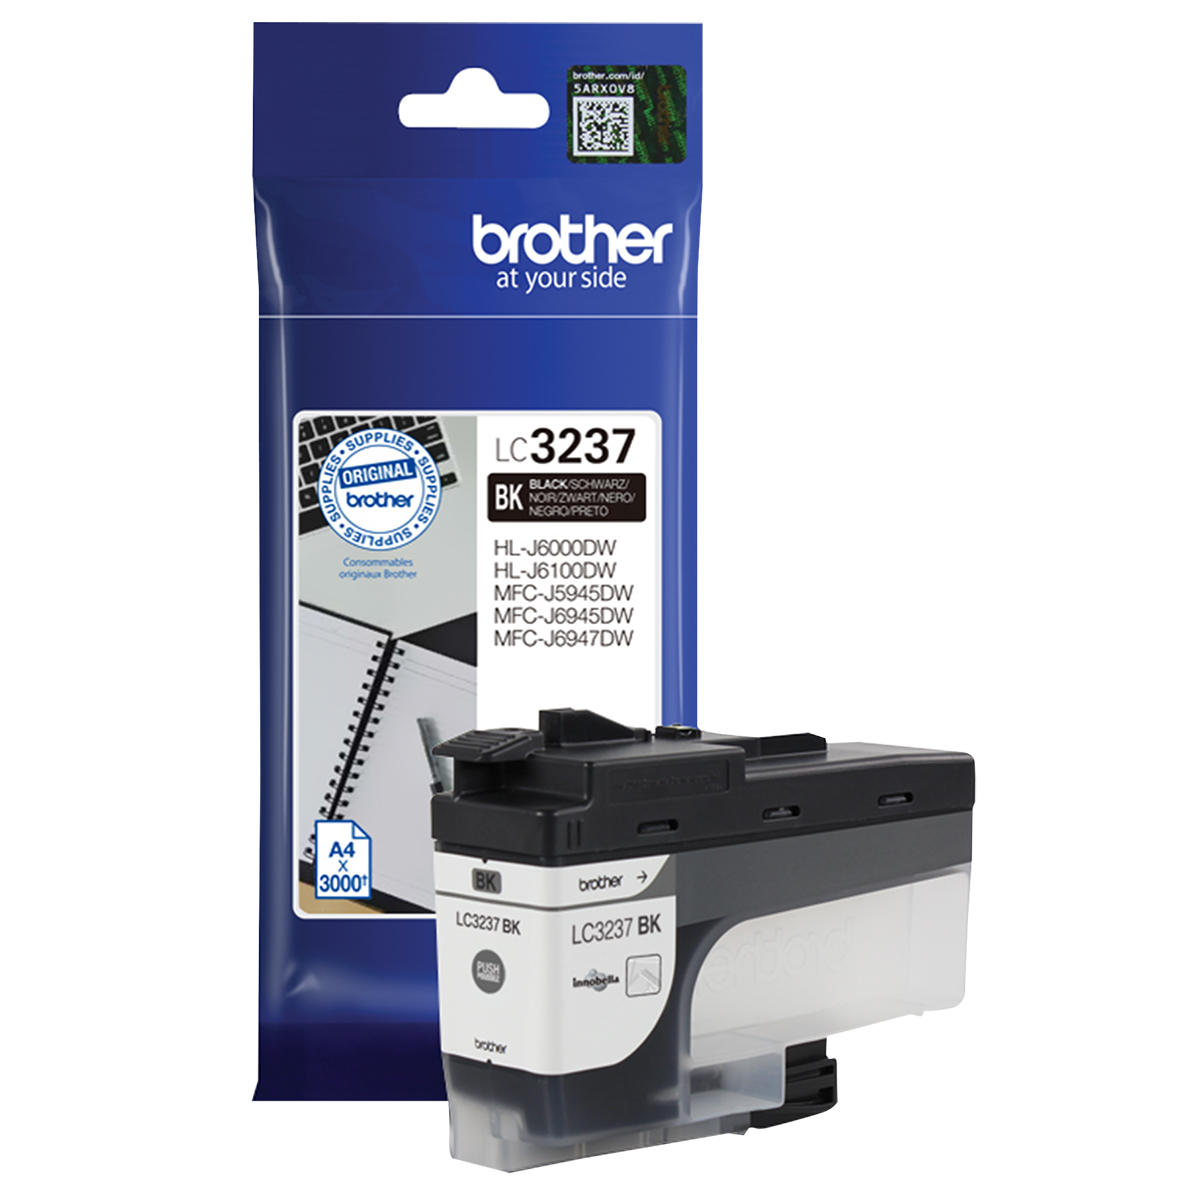 Brother LC3237BK Black Inkjet Cartridge